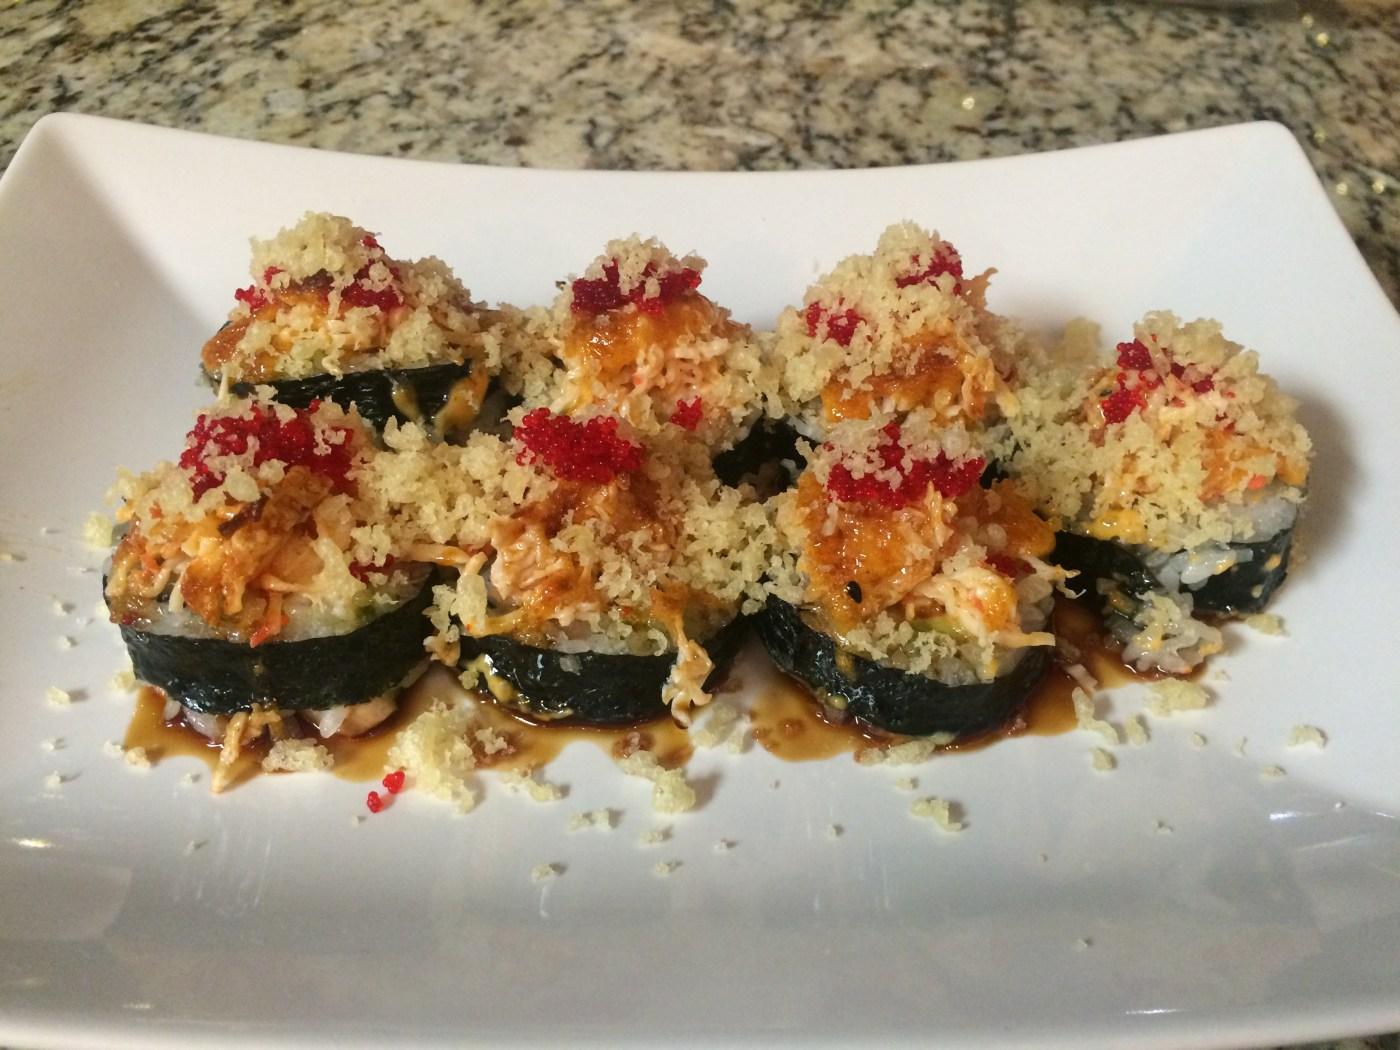 Volcano Roll chefs creation.